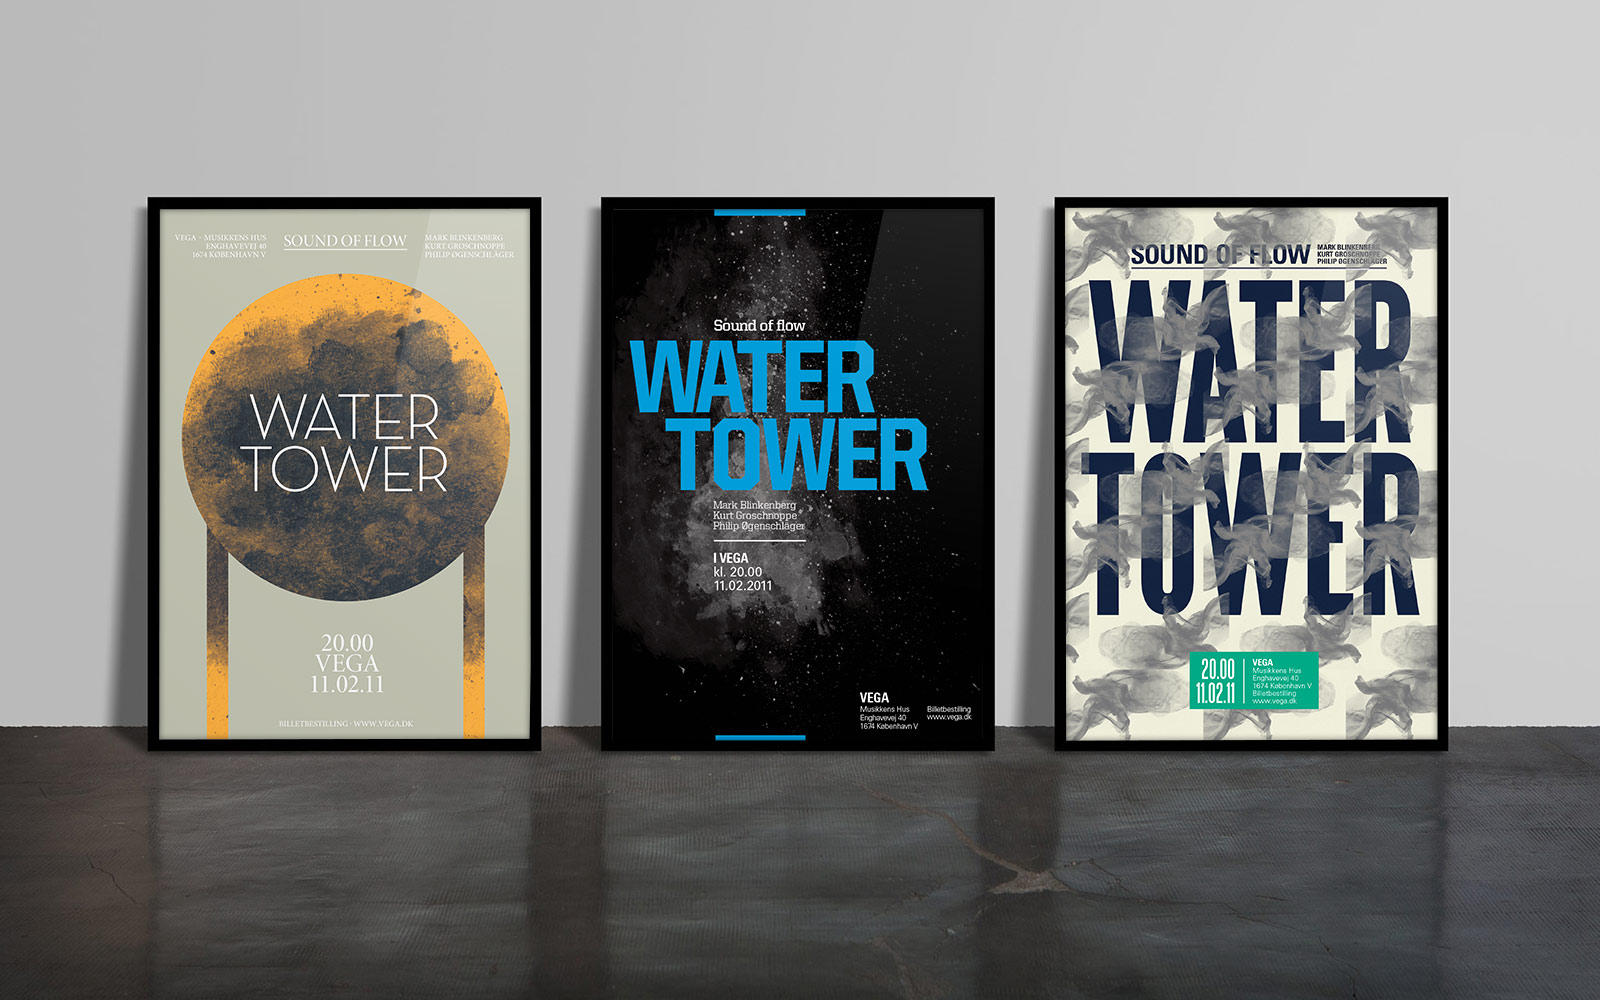 Water Tower - a series of three posters for a rock band